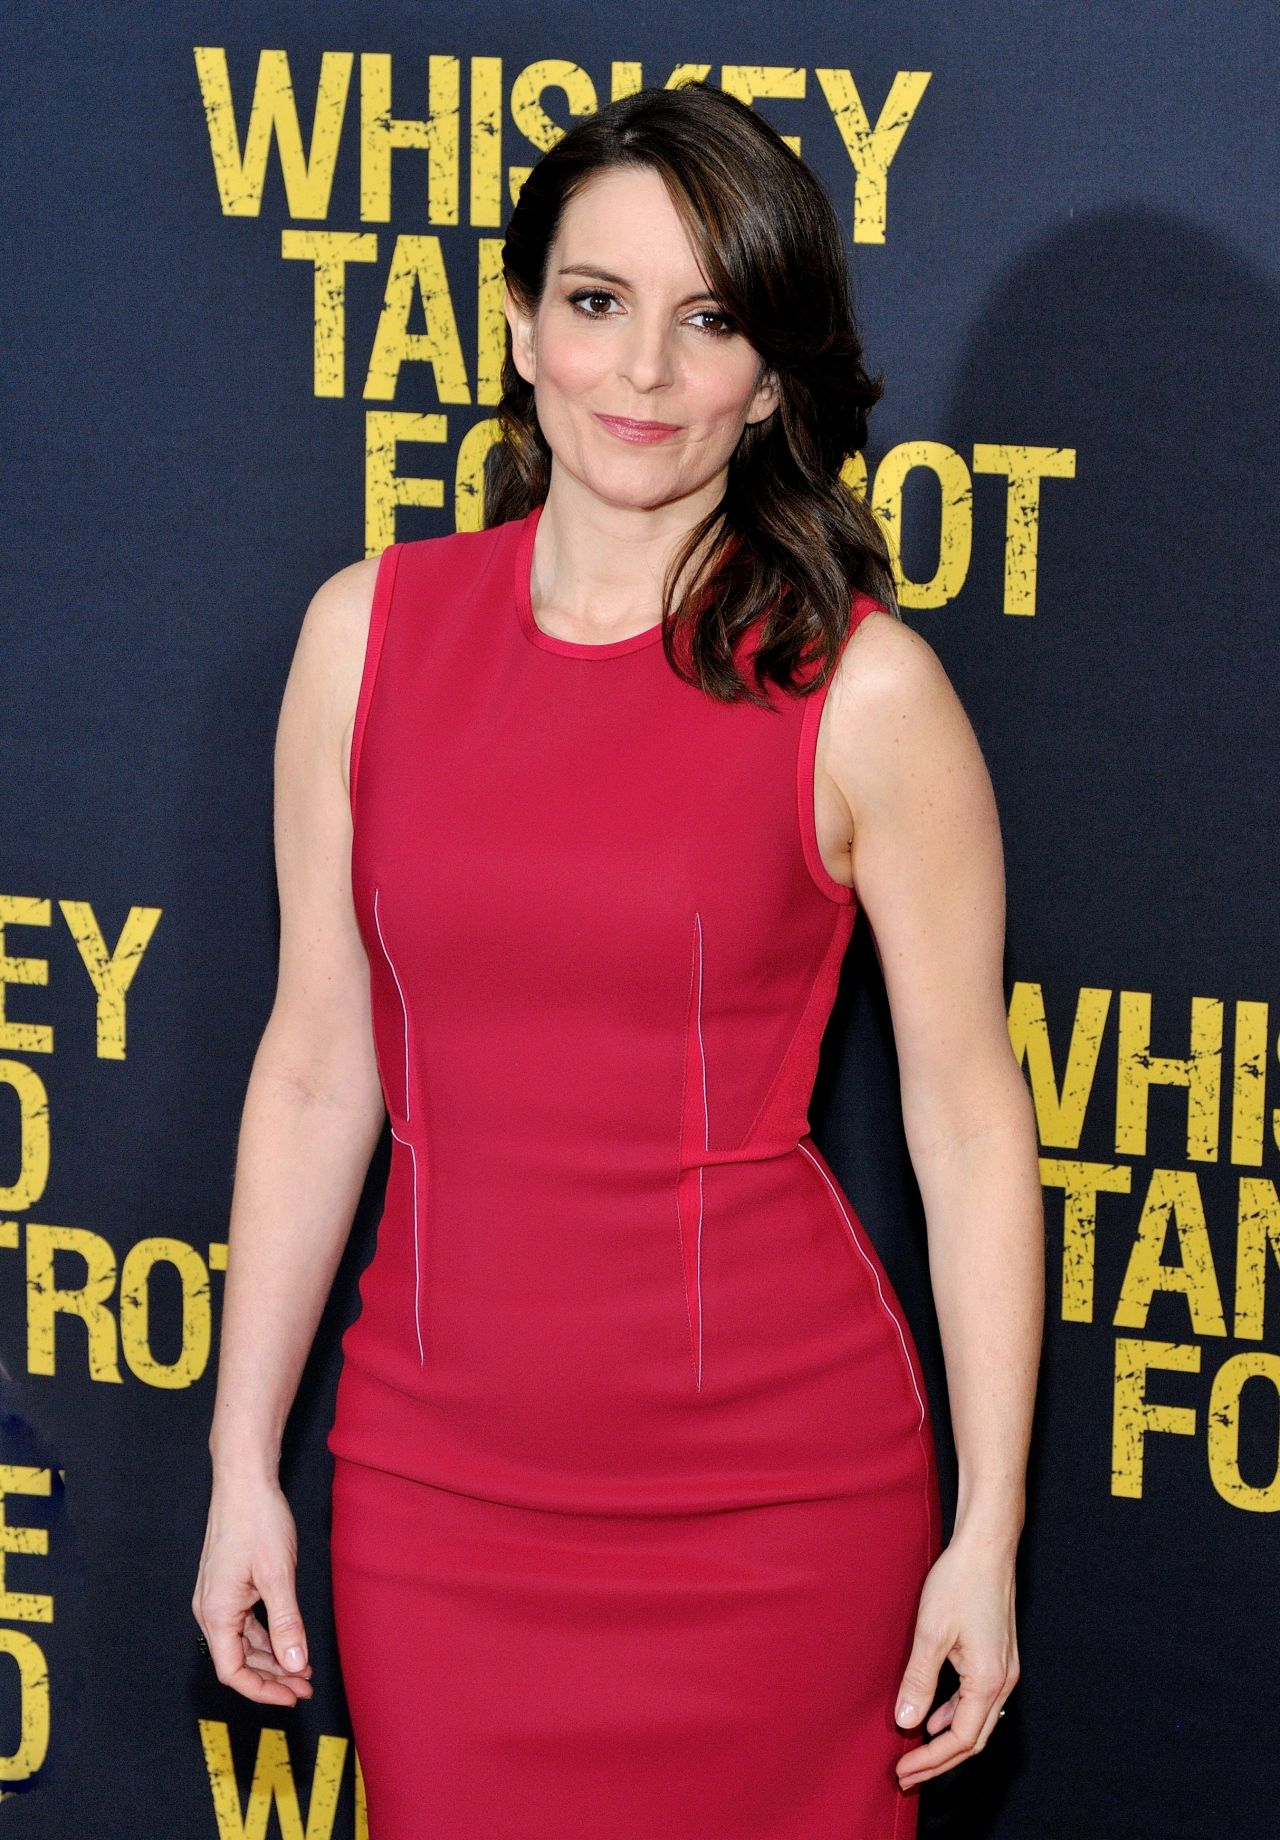 tina-fey-whiskey-tango-foxtrot-premiere-in-new-york-city-1